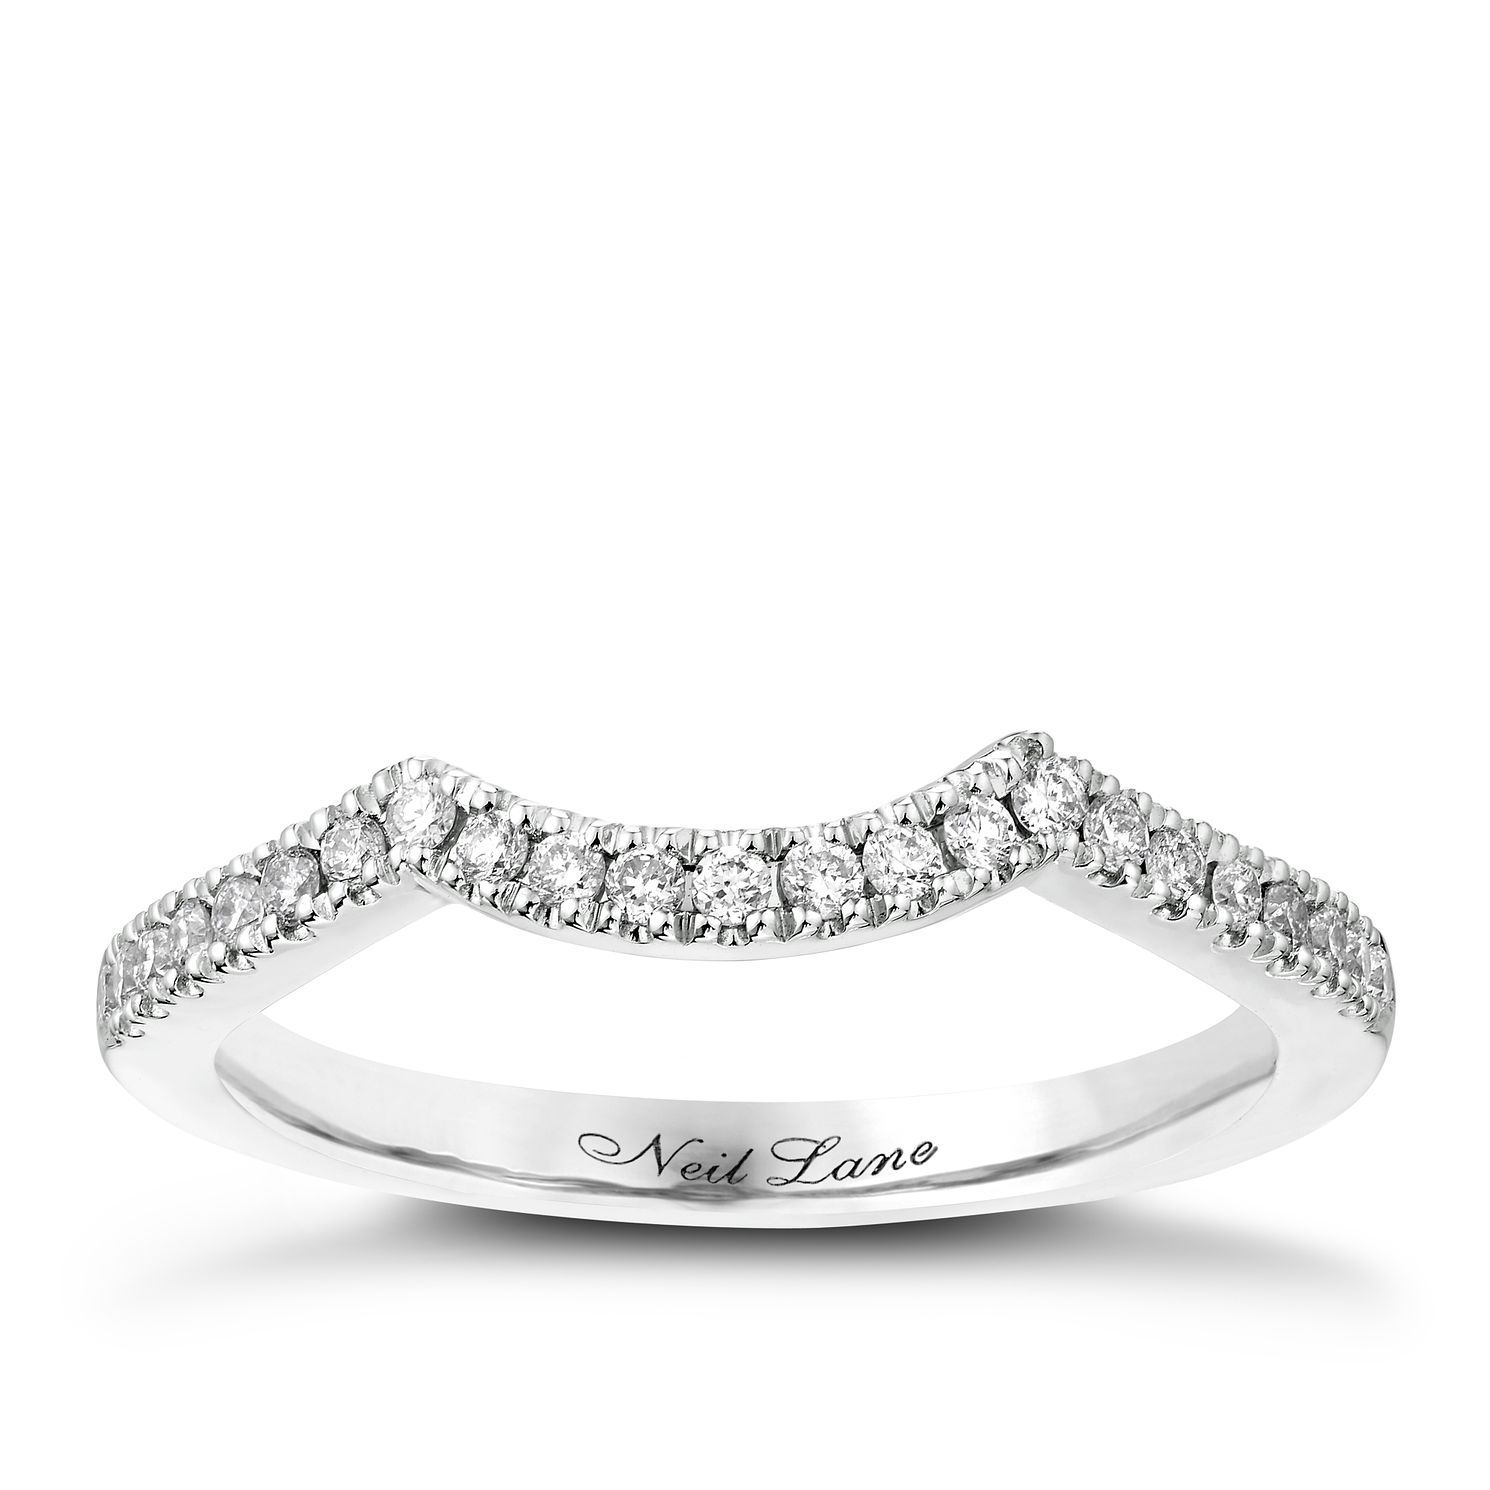 Neil Lane 14ct White Gold 0.16ct Diamond Shaped Band - Product number 2935457